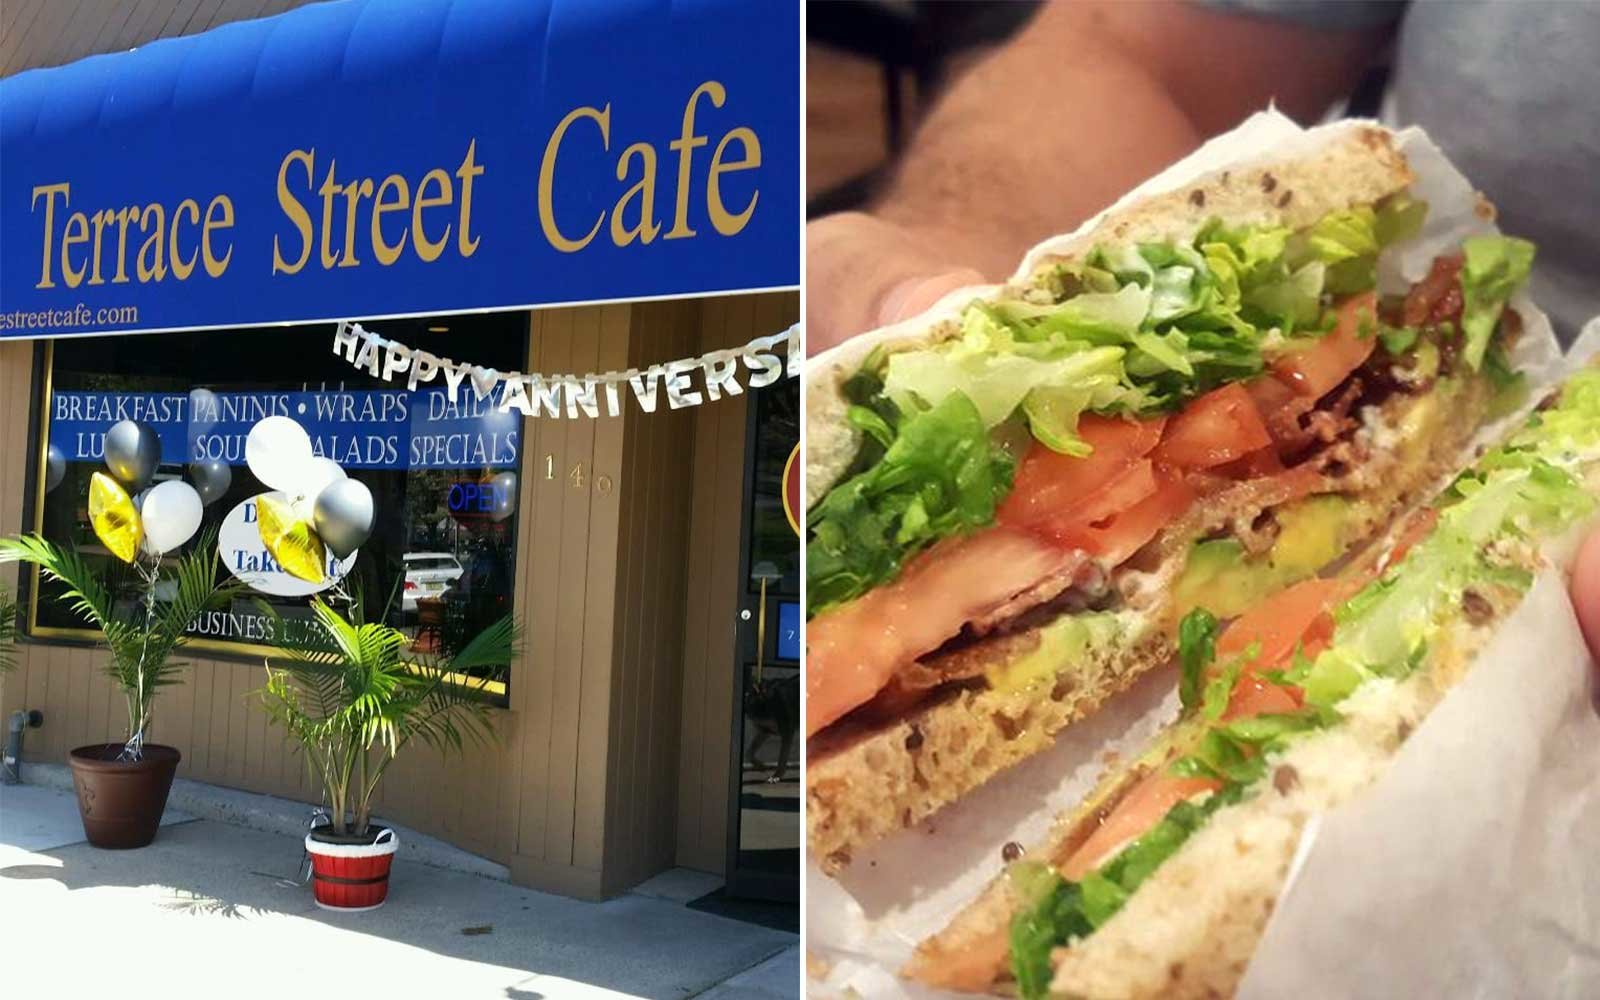 Terrace Street Cafe in Haworth New Jersey